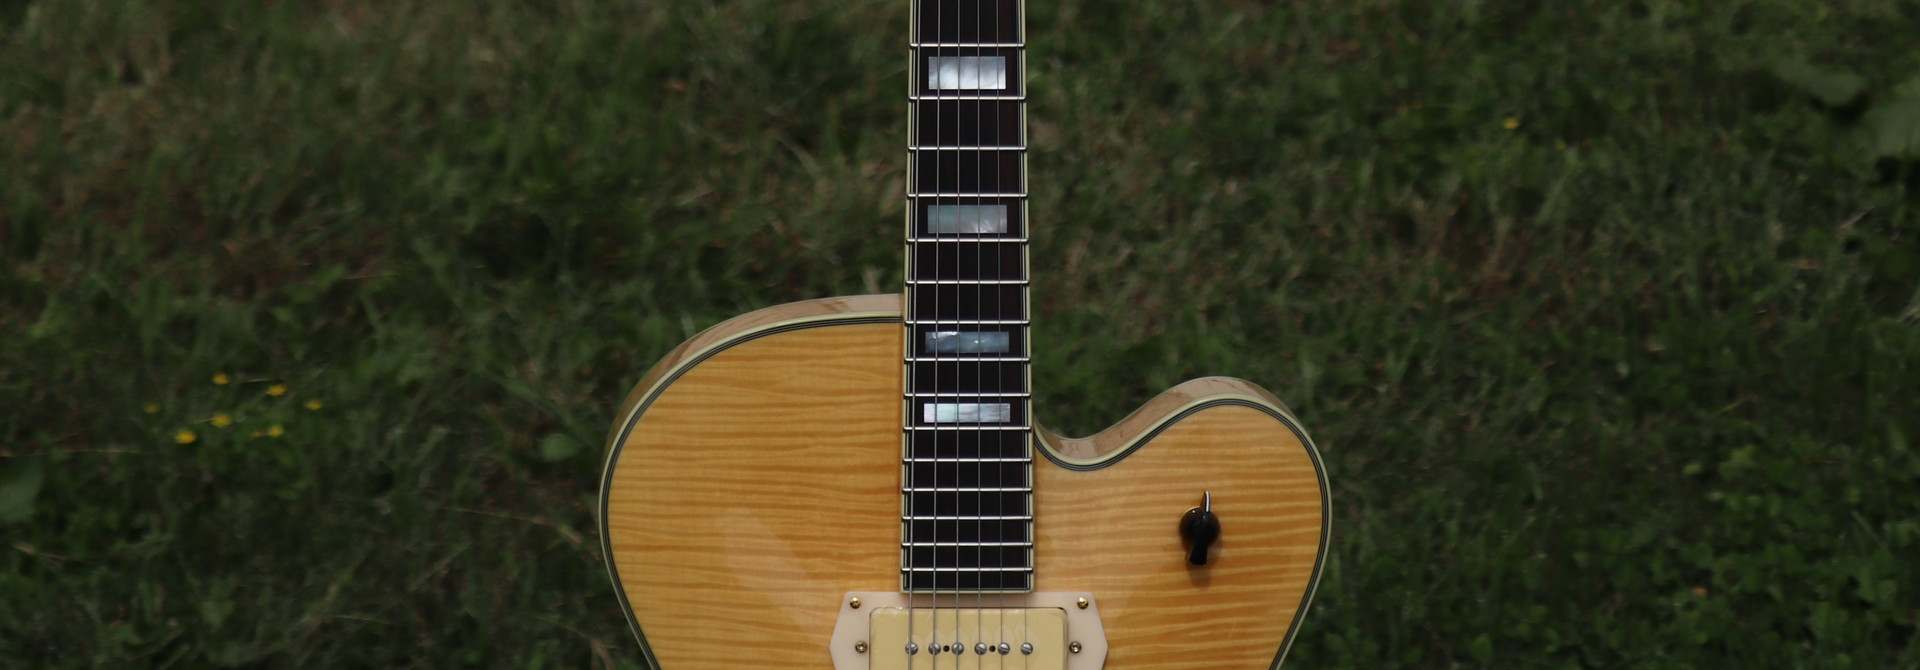 D'Angelico Excel EX-59 Hollowbody - Natural